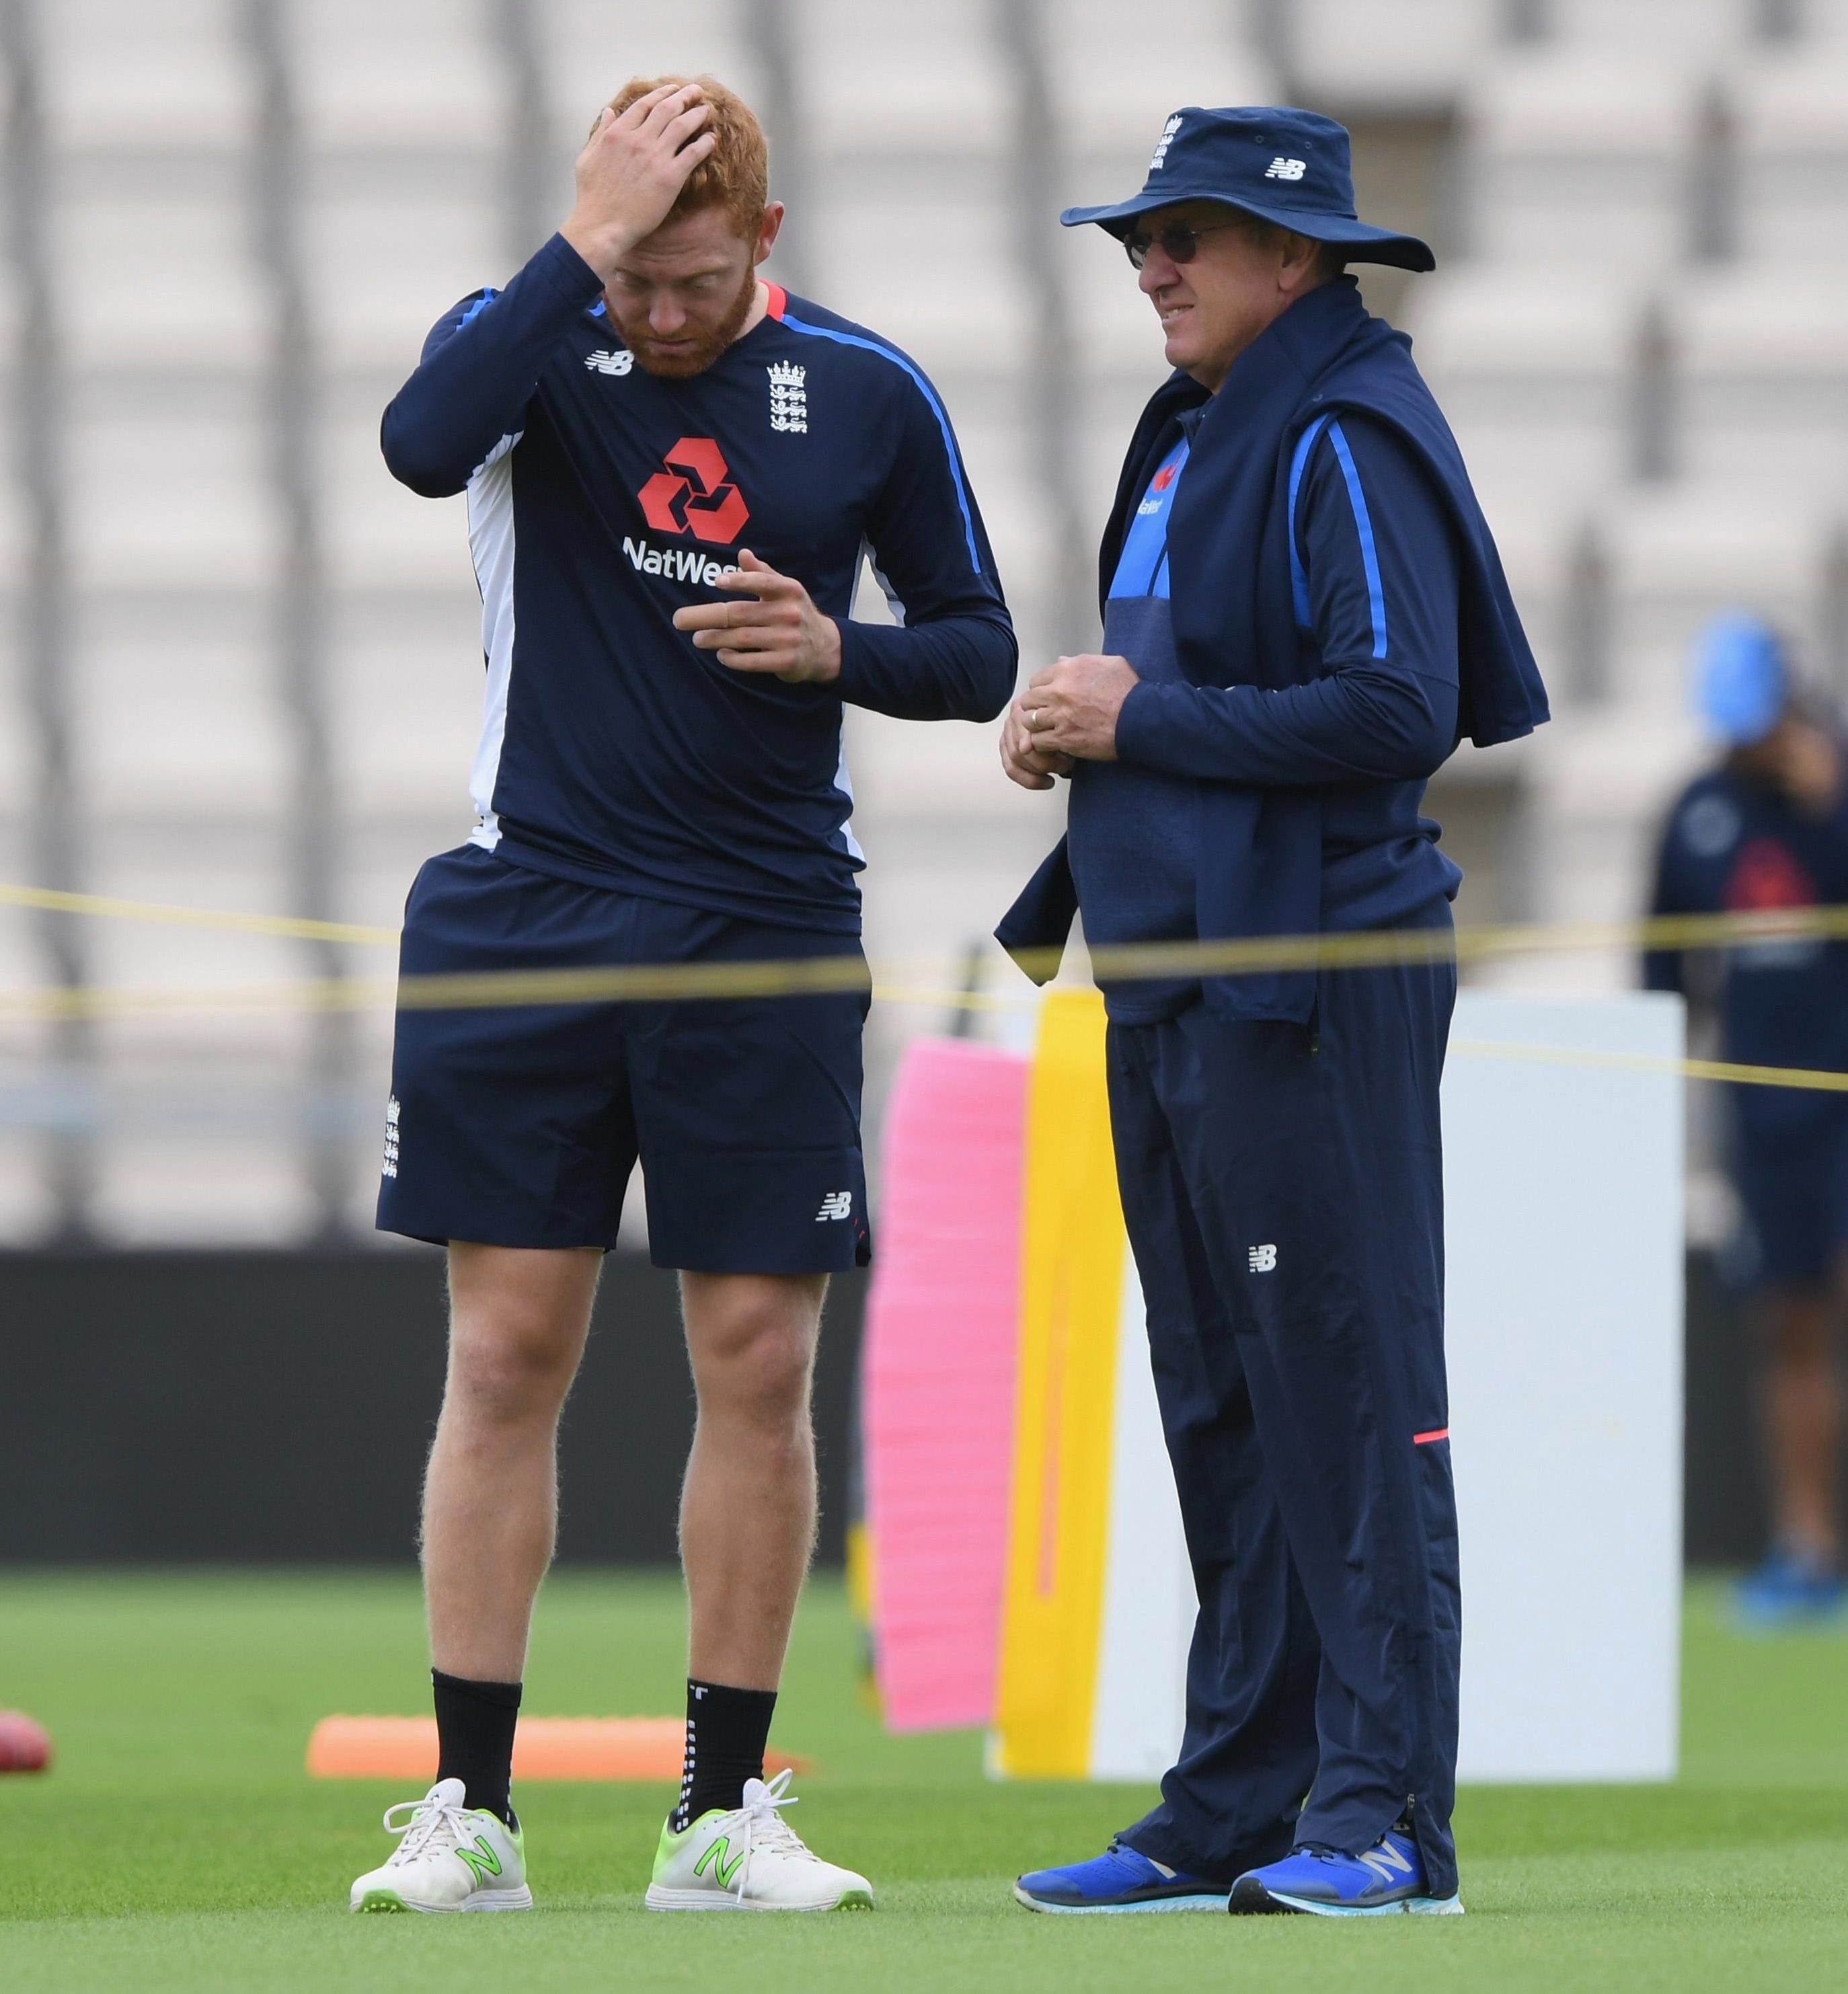 Bairstow showed signs of frustration during a 20-minute chat with Bayliss